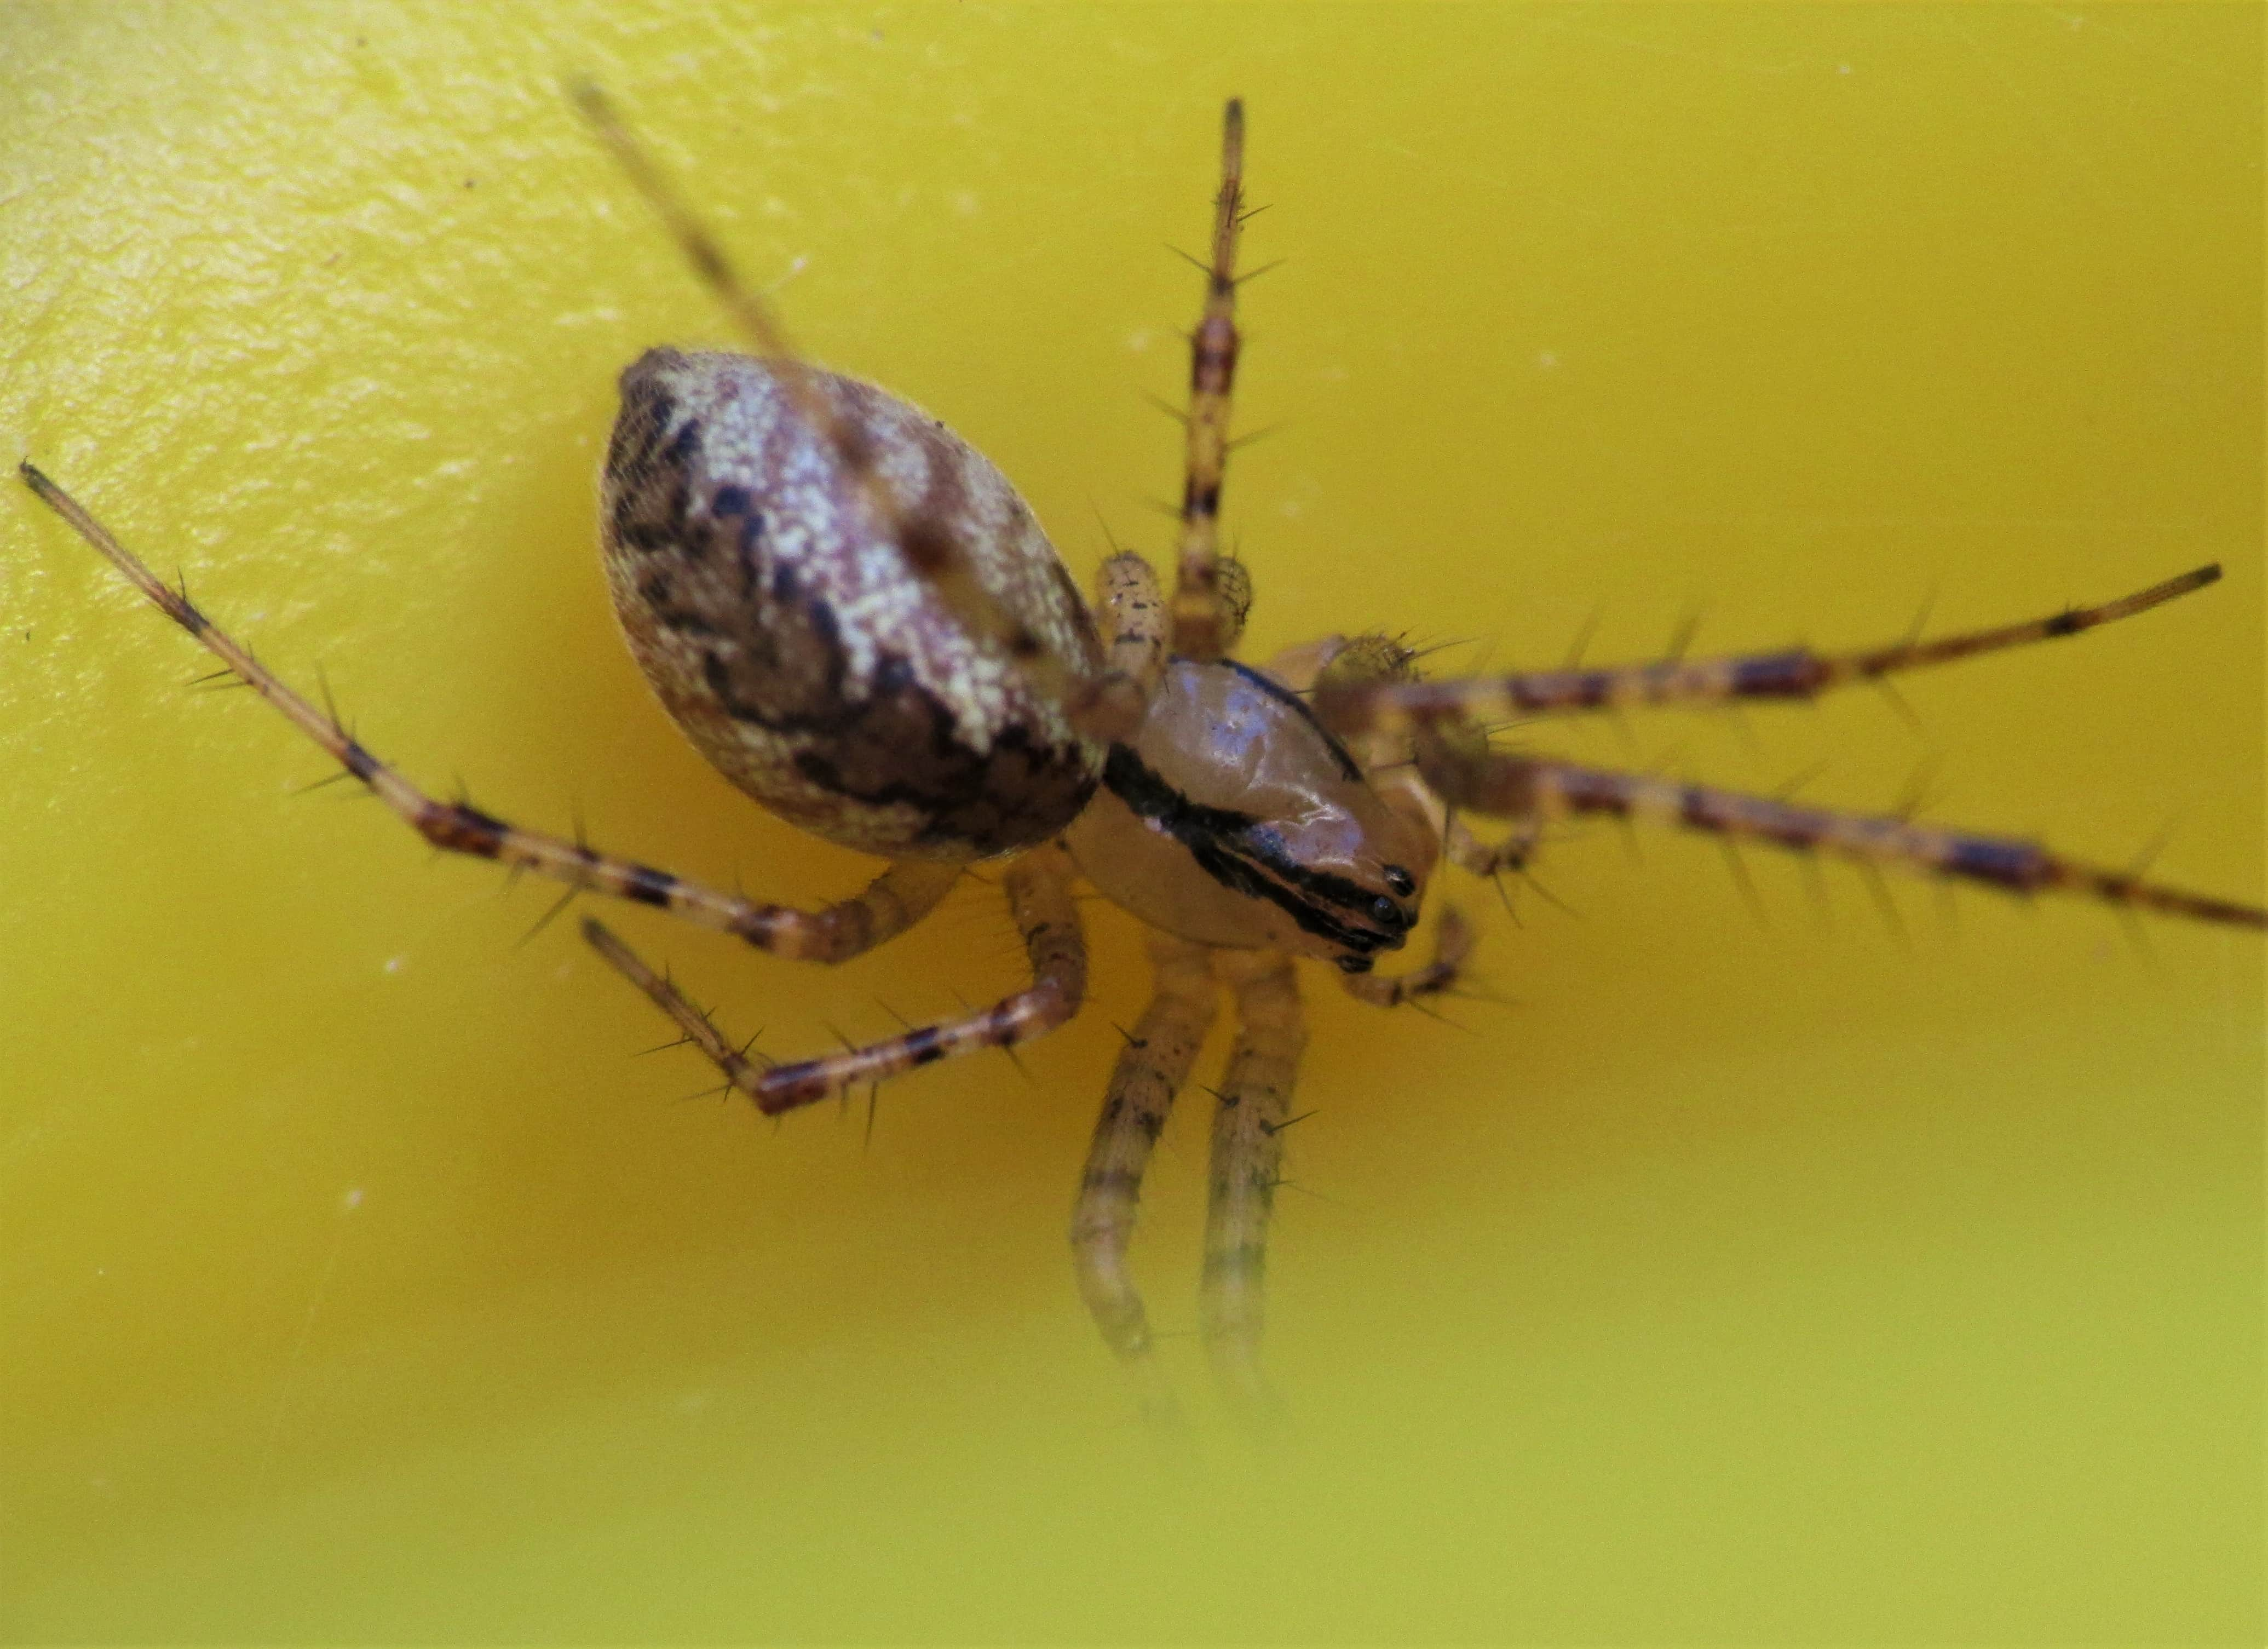 Picture of Pityohyphantes costatus (Hammock Spider) - Female - Dorsal